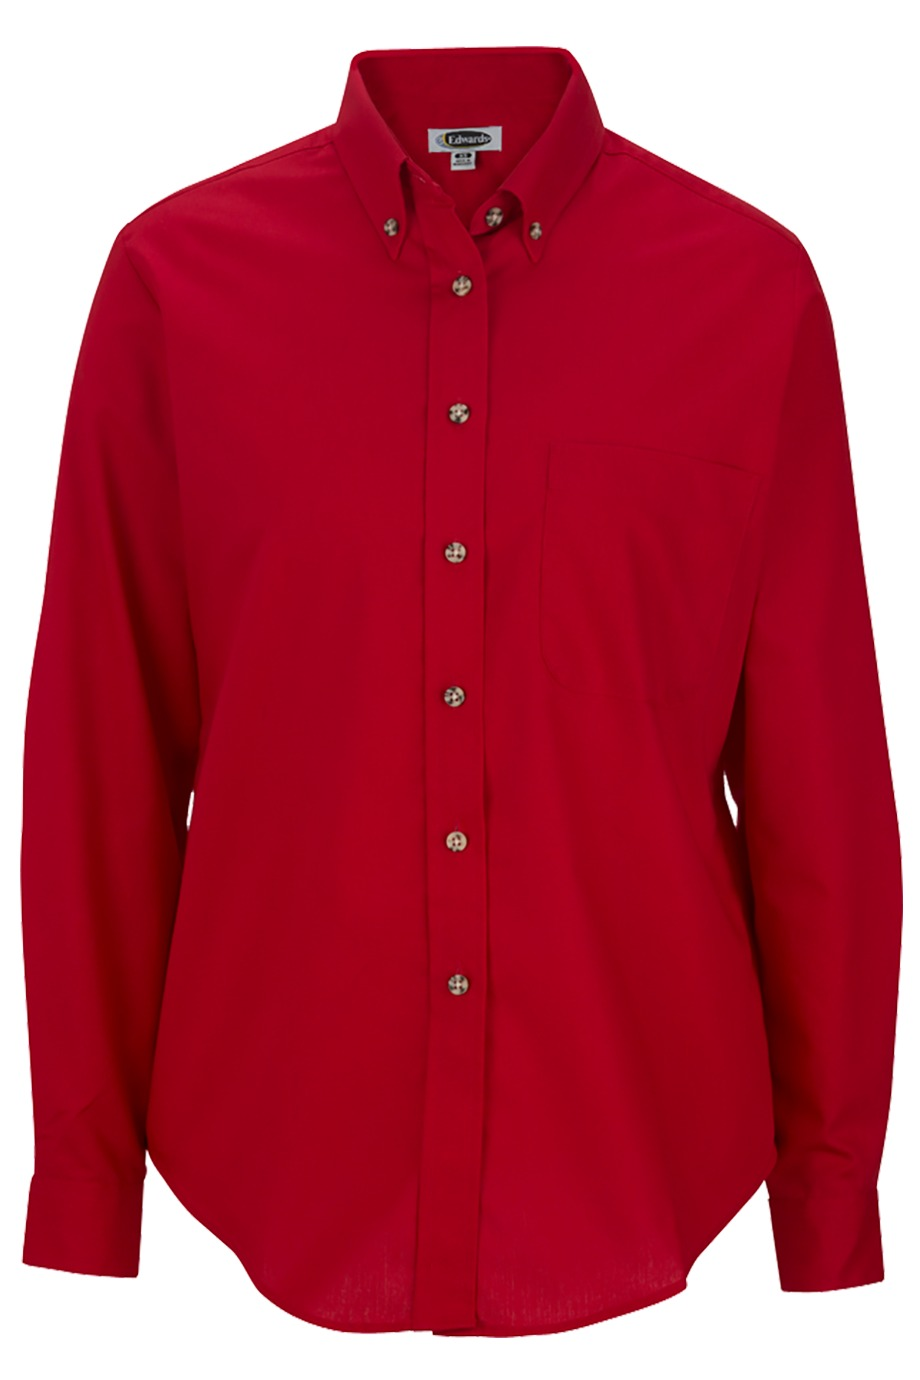 Edwards Garment 5280 - Women's Easy Care Long Sleeve ...